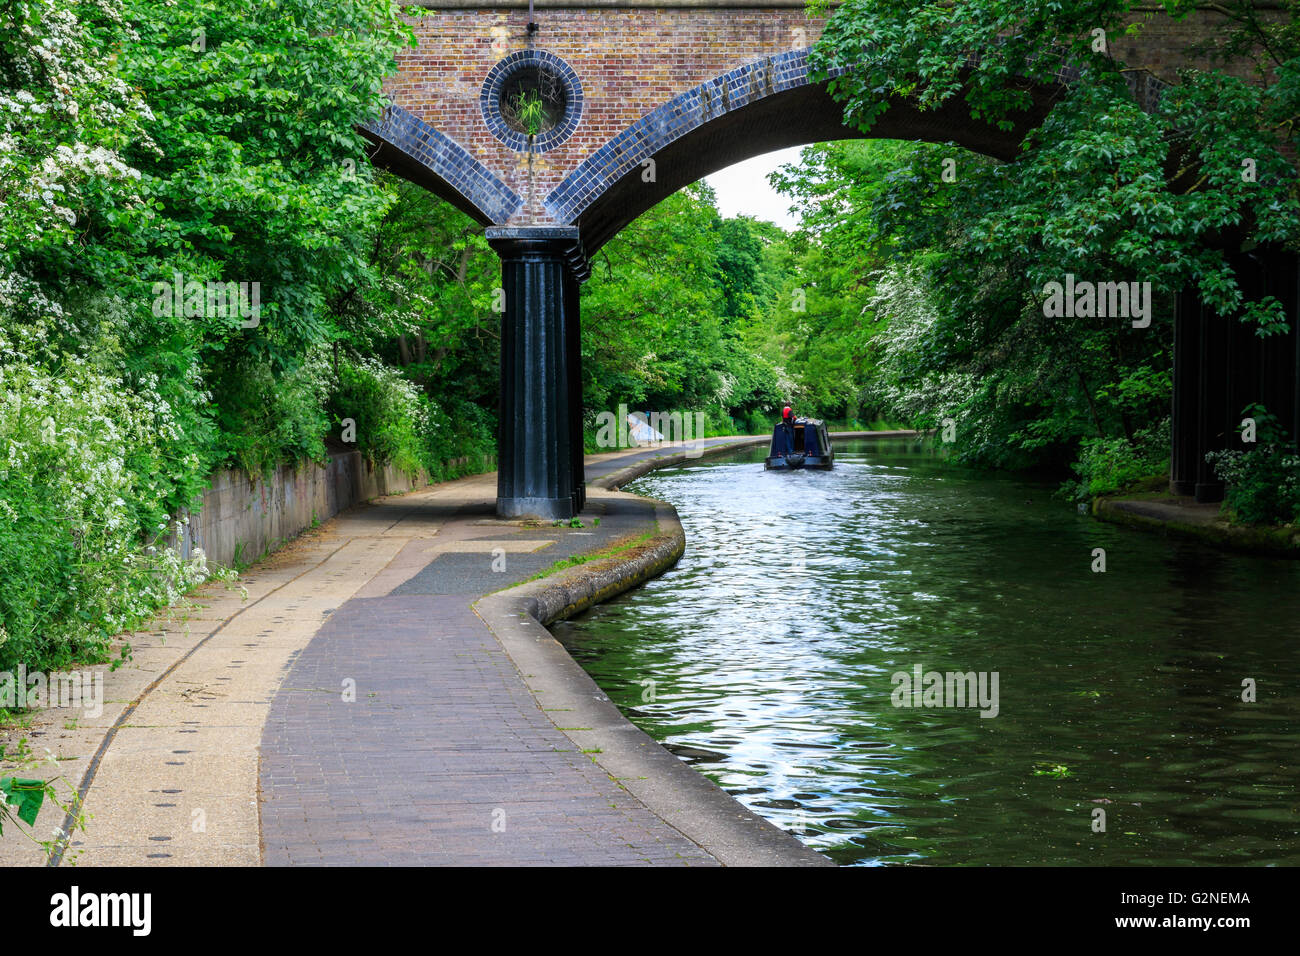 Peaceful scenery of Regent's canal in London - Stock Image